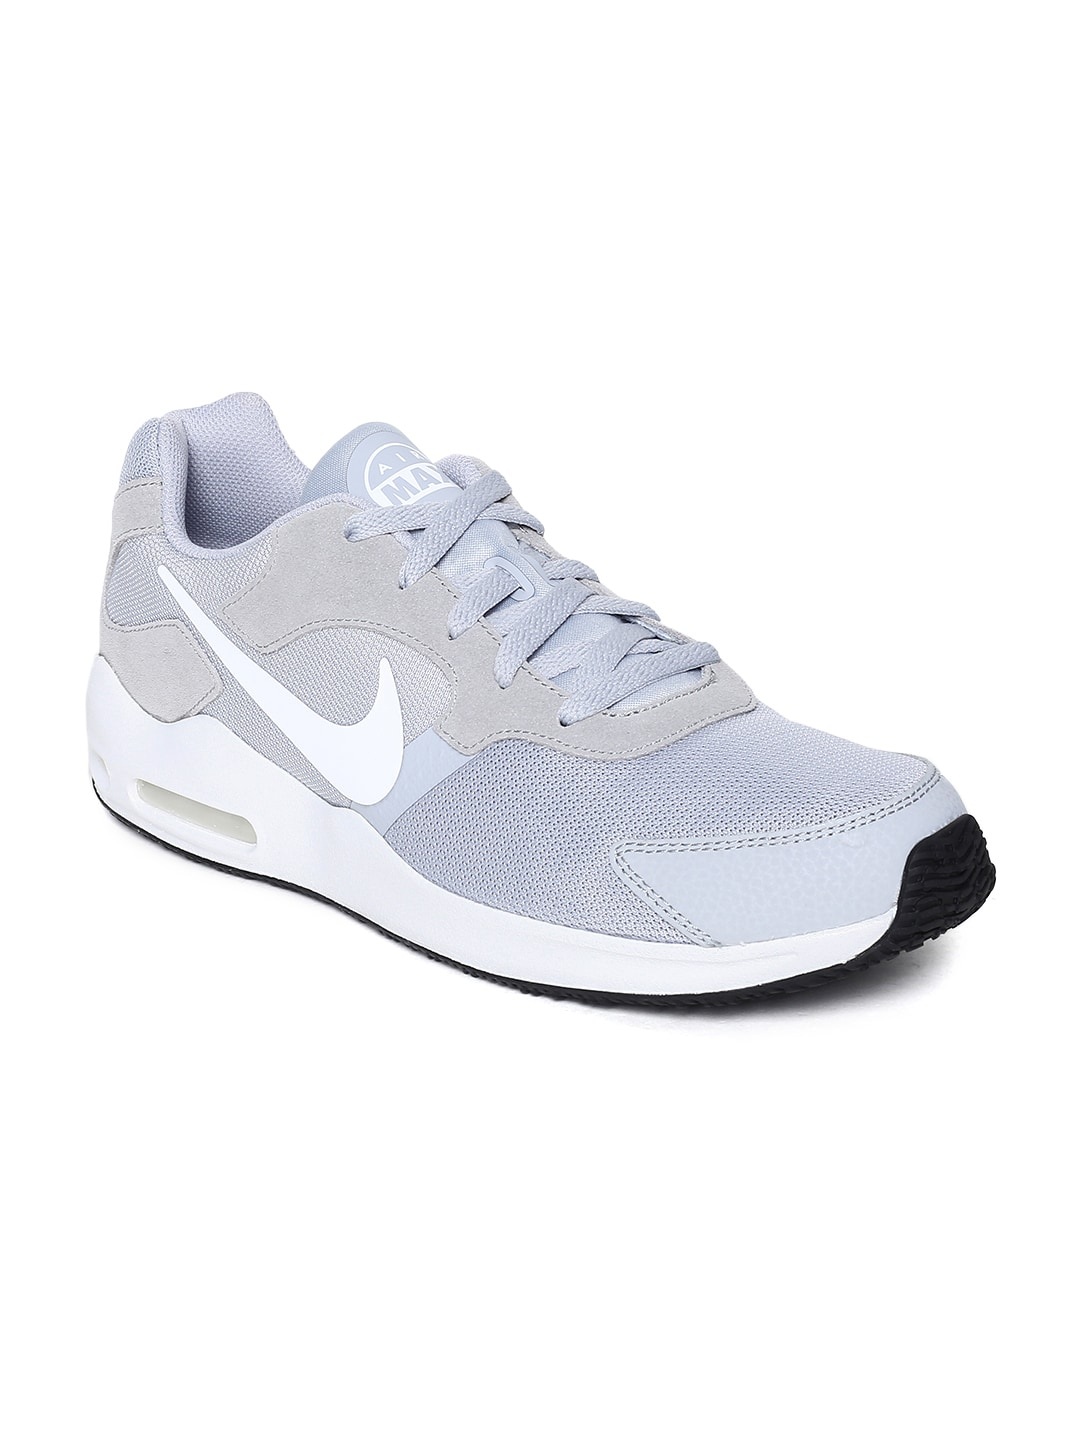 new product e3de0 fc957 Apparel Nike Casual Shoes - Buy Apparel Nike Casual Shoes online in India